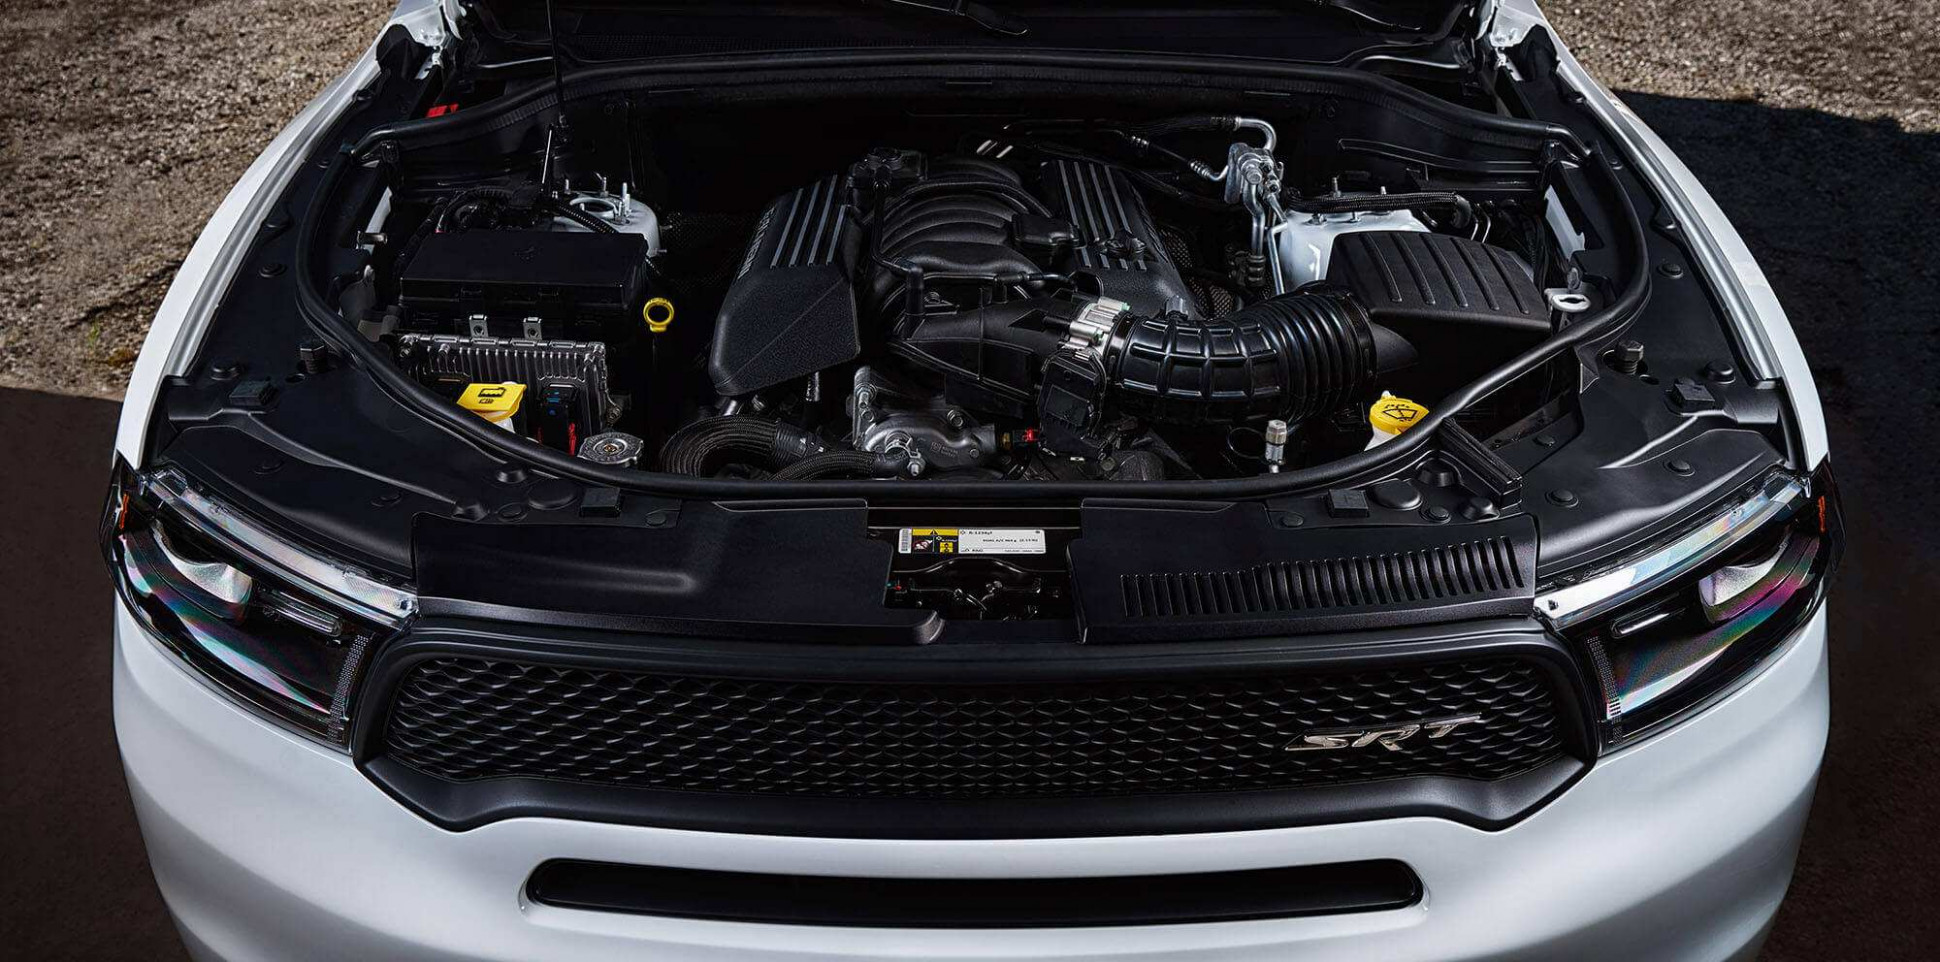 7 New 7 Dodge Charger Engine Price by 7 Dodge Charger ...